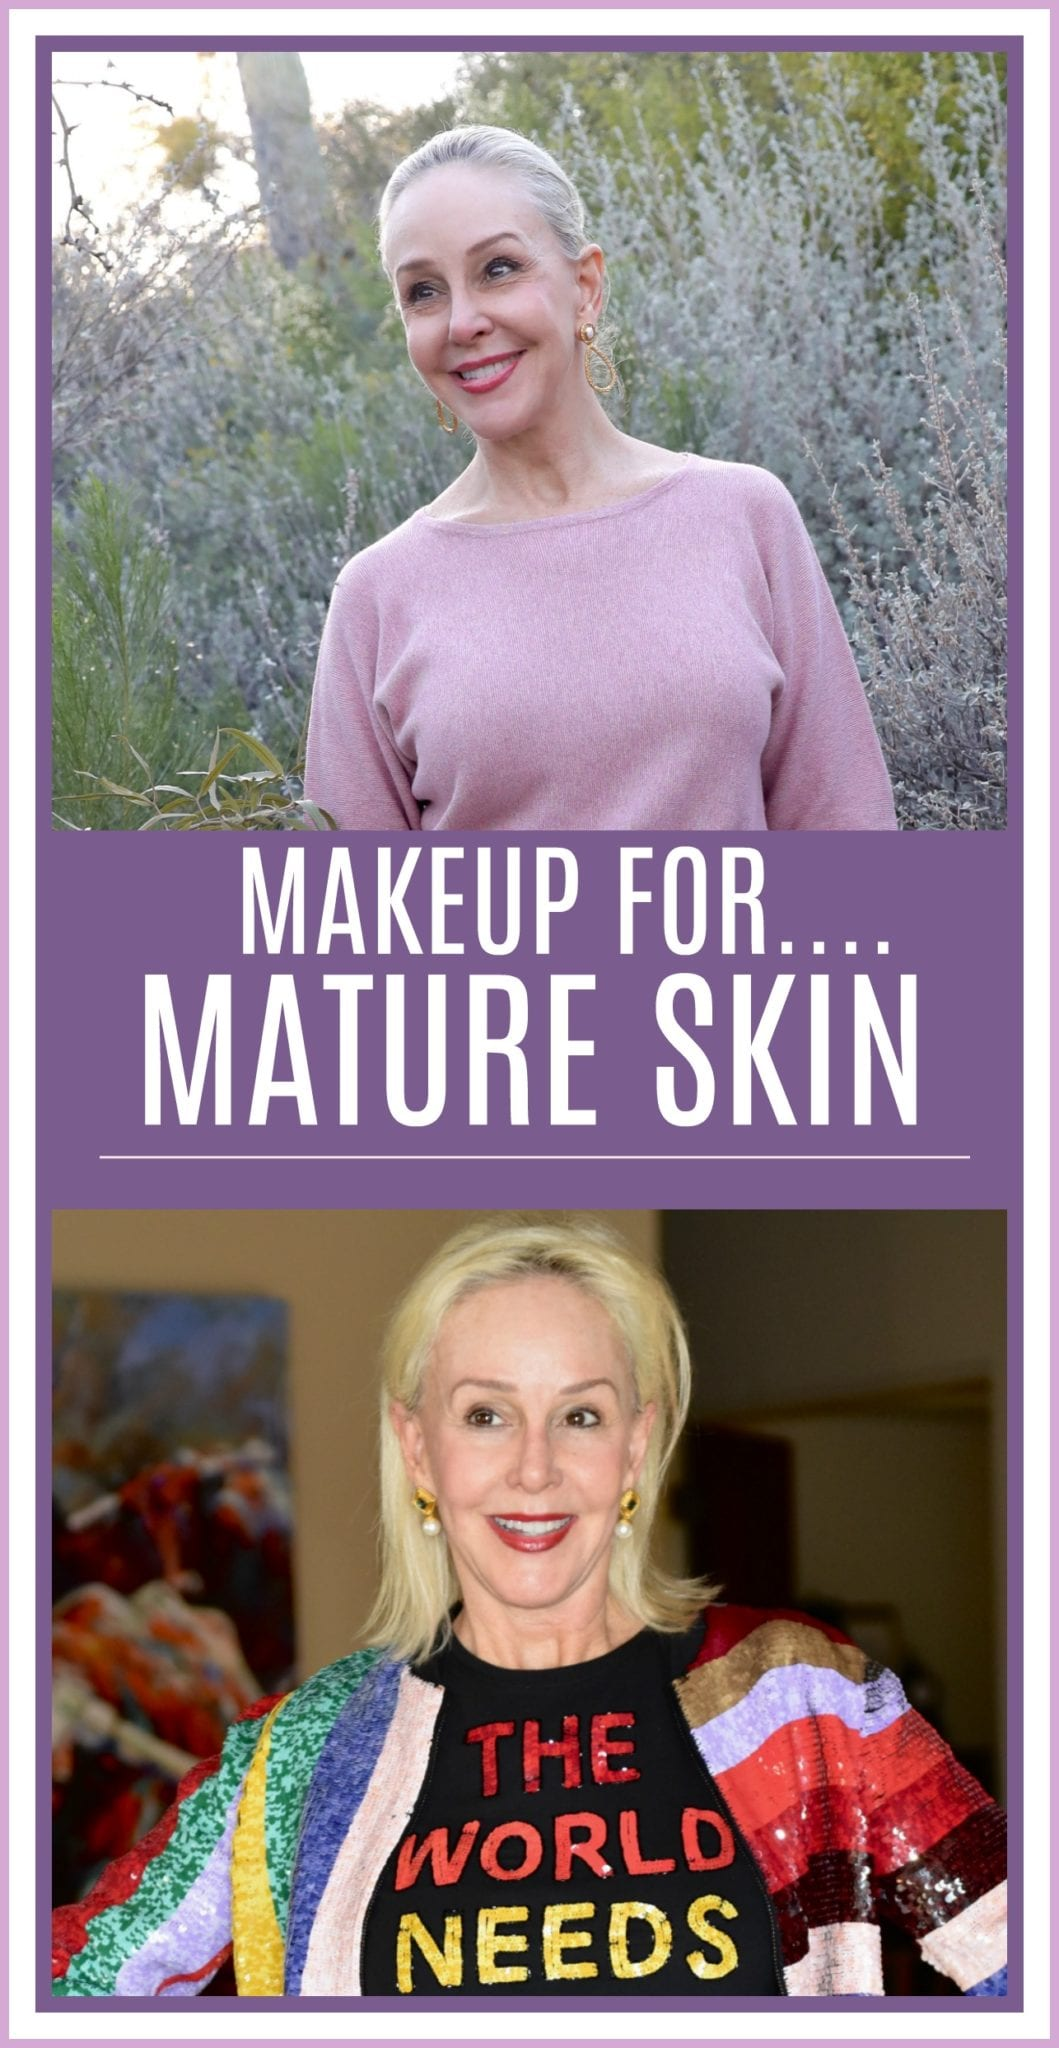 #lookfabulousforever, #makeup, #agingskin, #matureskinmakeup, #beauty